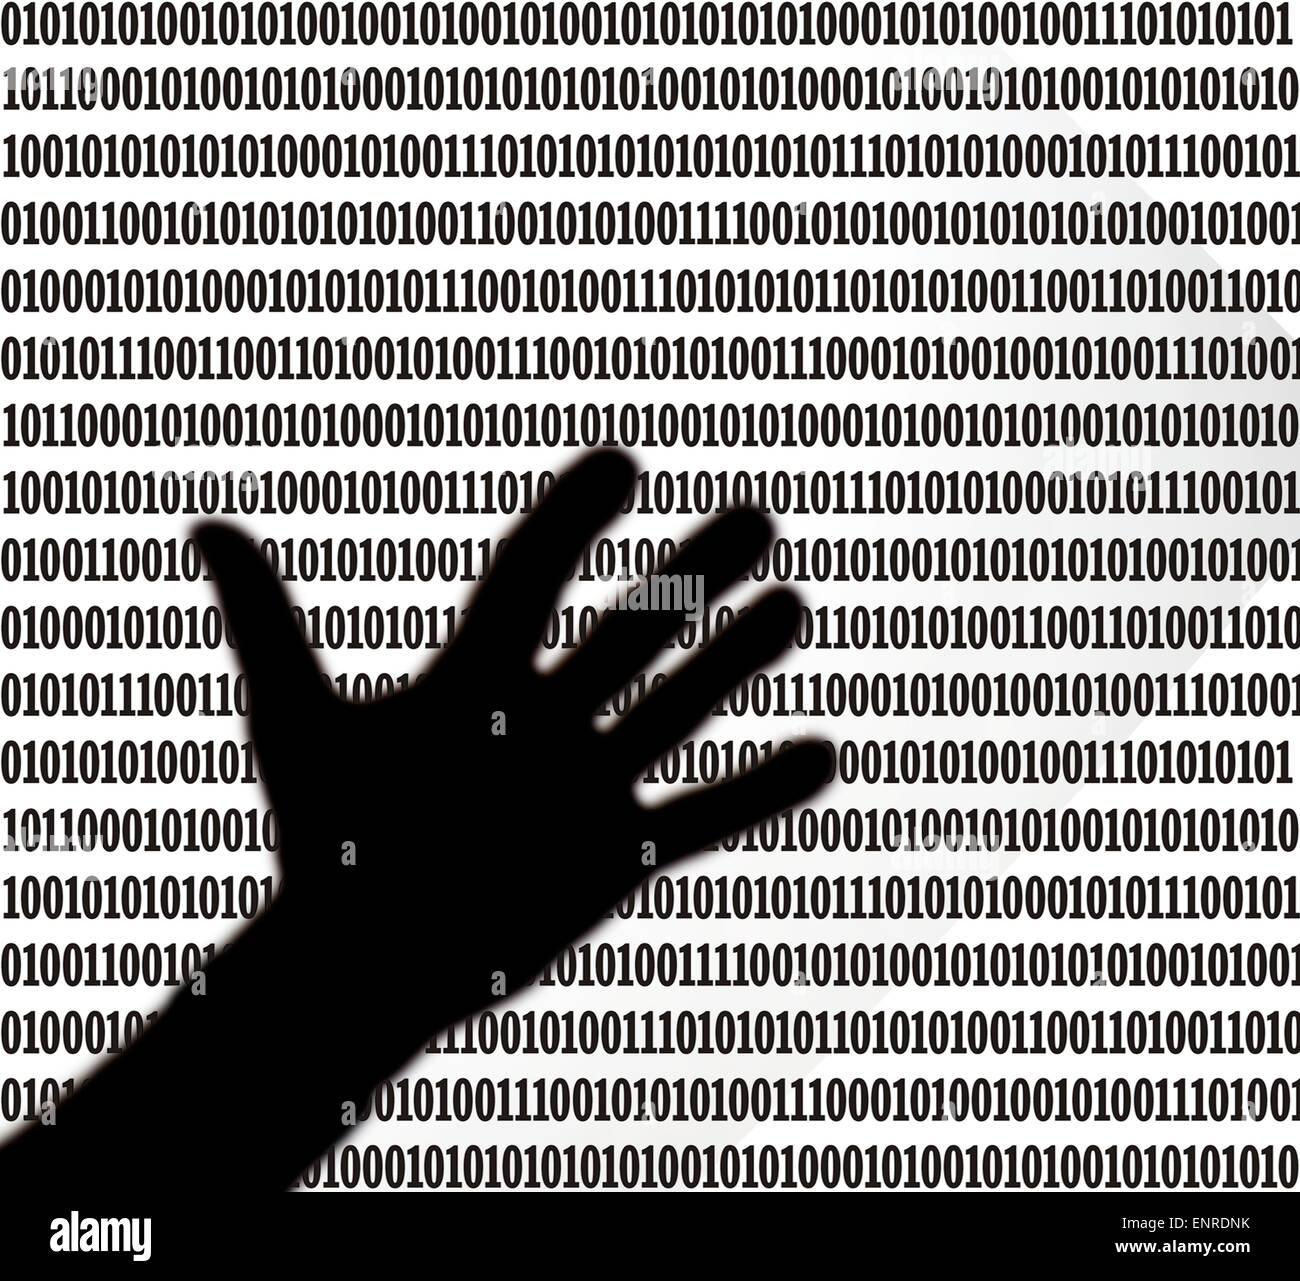 silhouetted hand hovering over a sheet of binary code - Stock Image